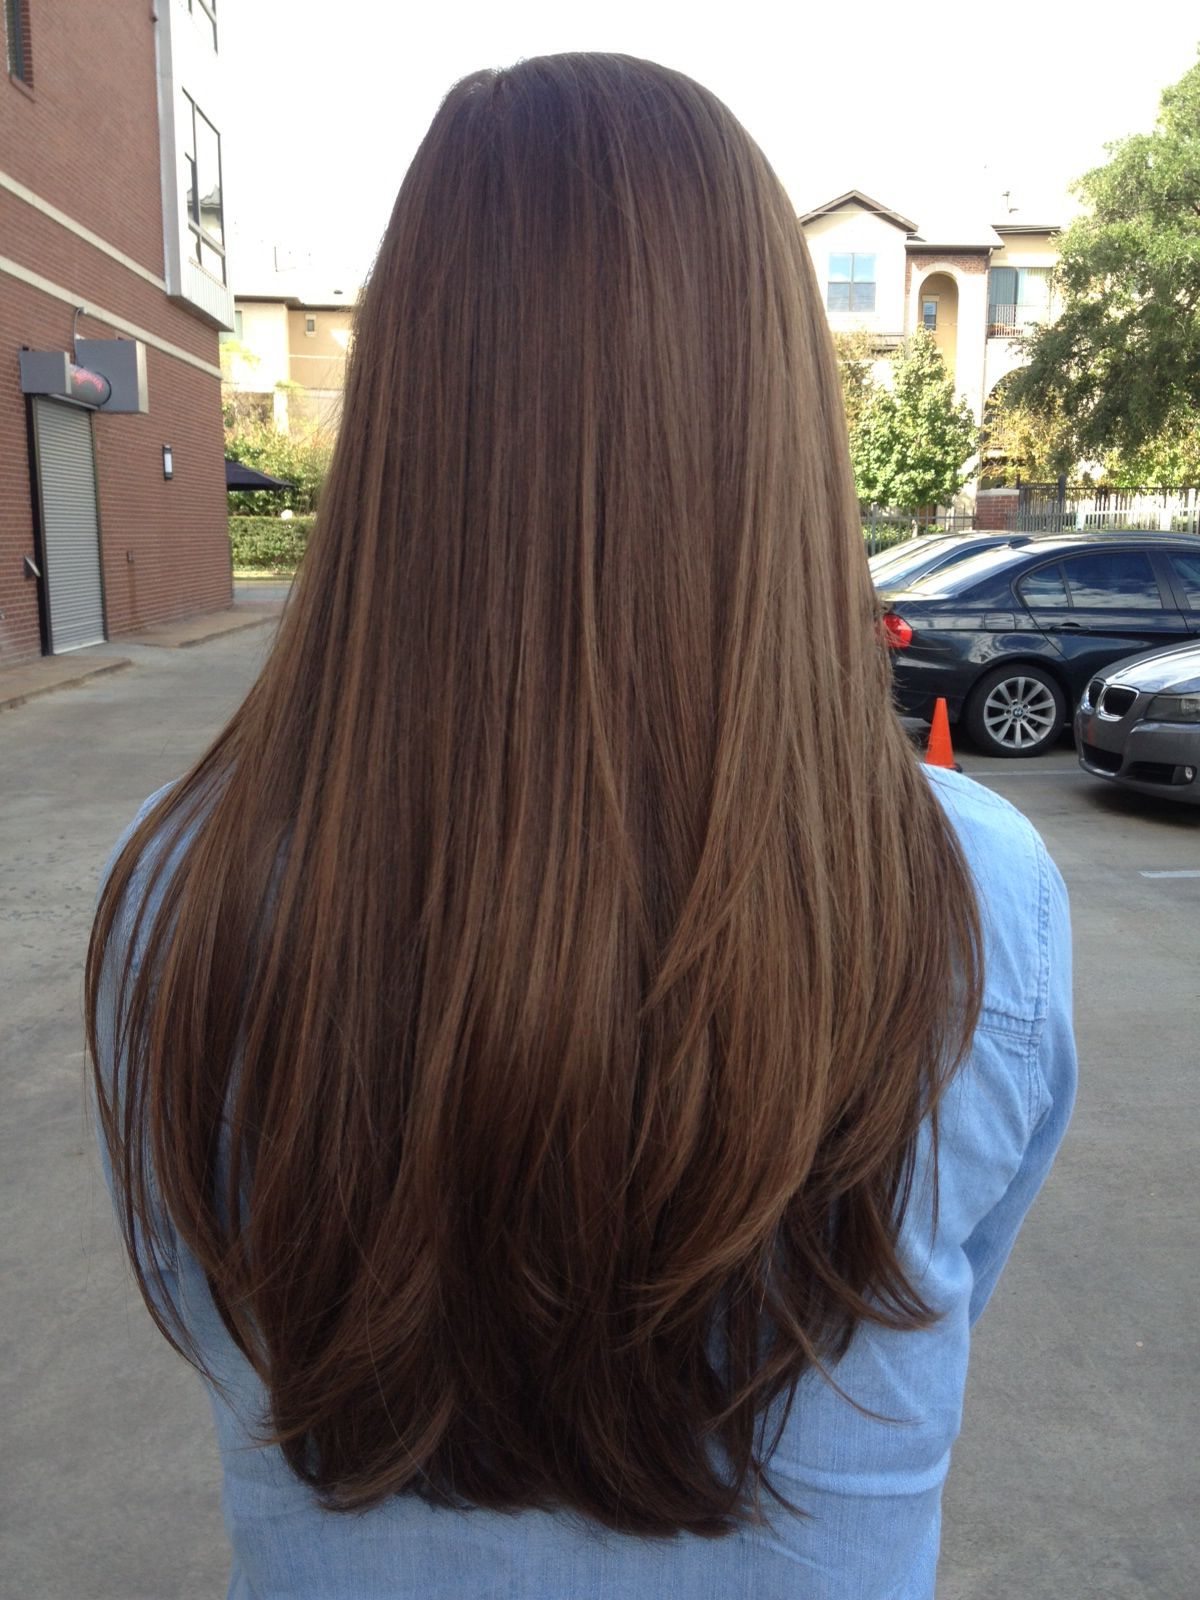 Forum on this topic: 2014 Cute Hairstyles for Girls: Long Straight , 2014-cute-hairstyles-for-girls-long-straight/